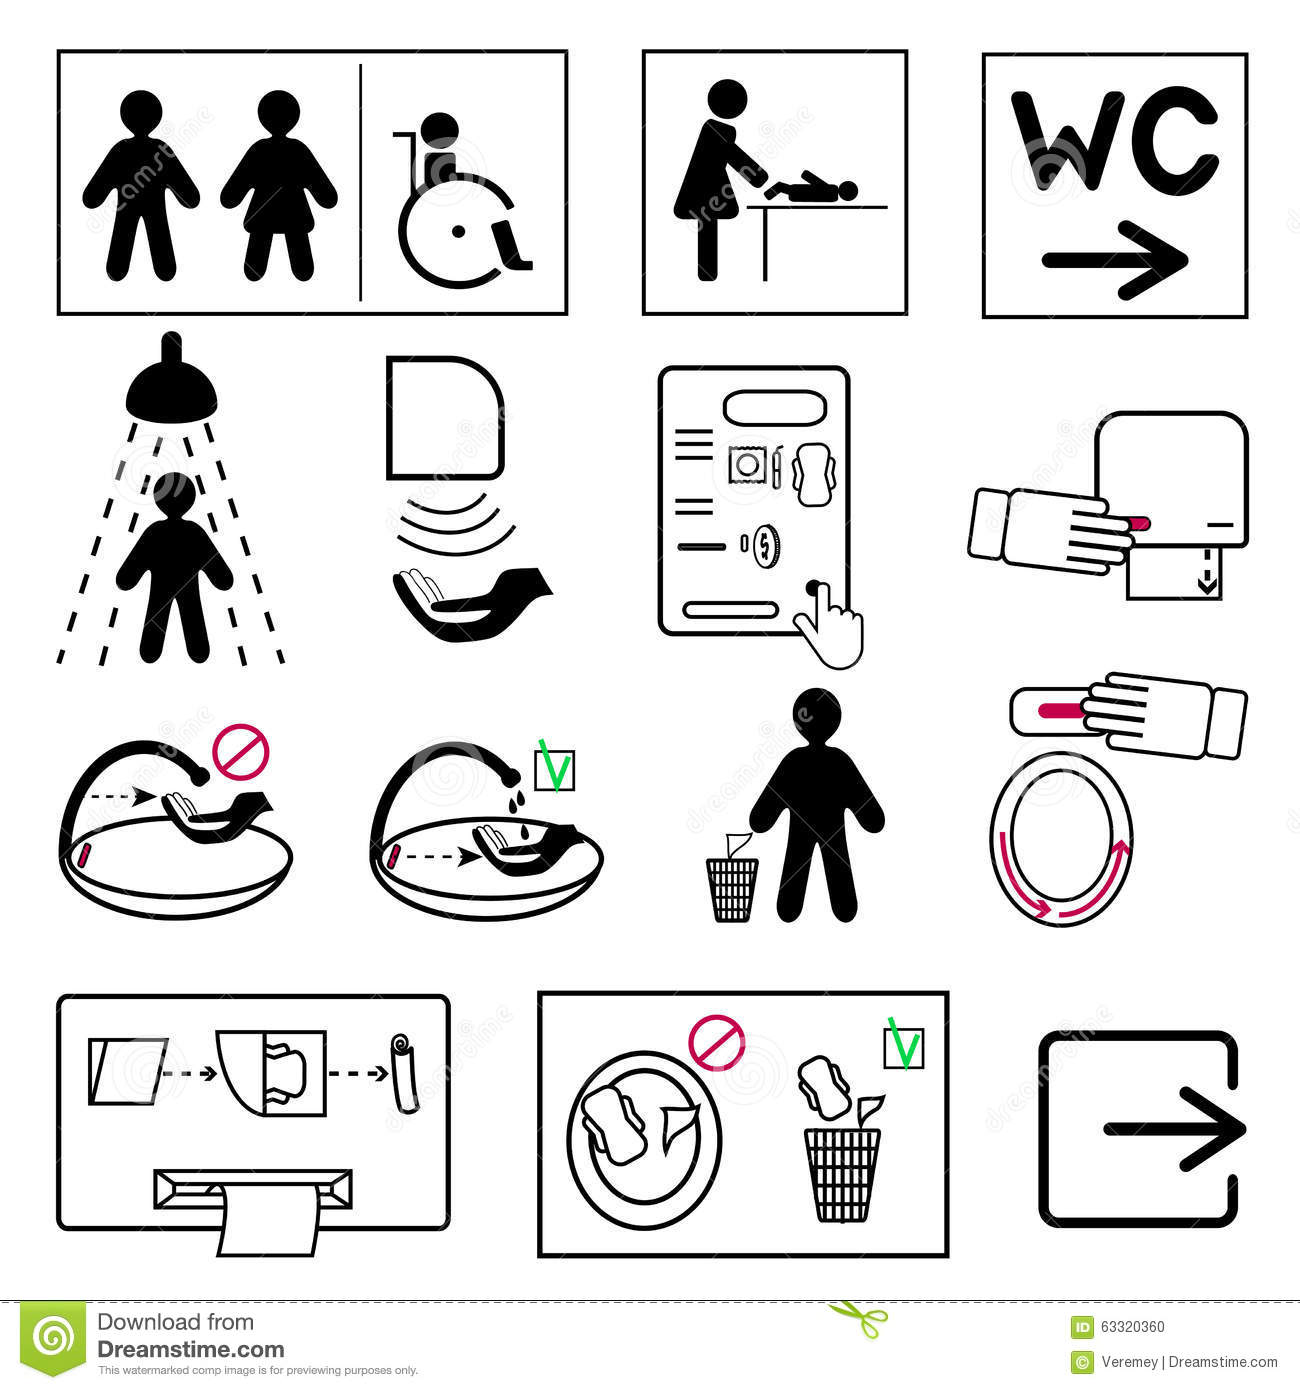 Sign Language For Bathroom: Set Of Toilet And Bathroom Signs For Public Places Stock